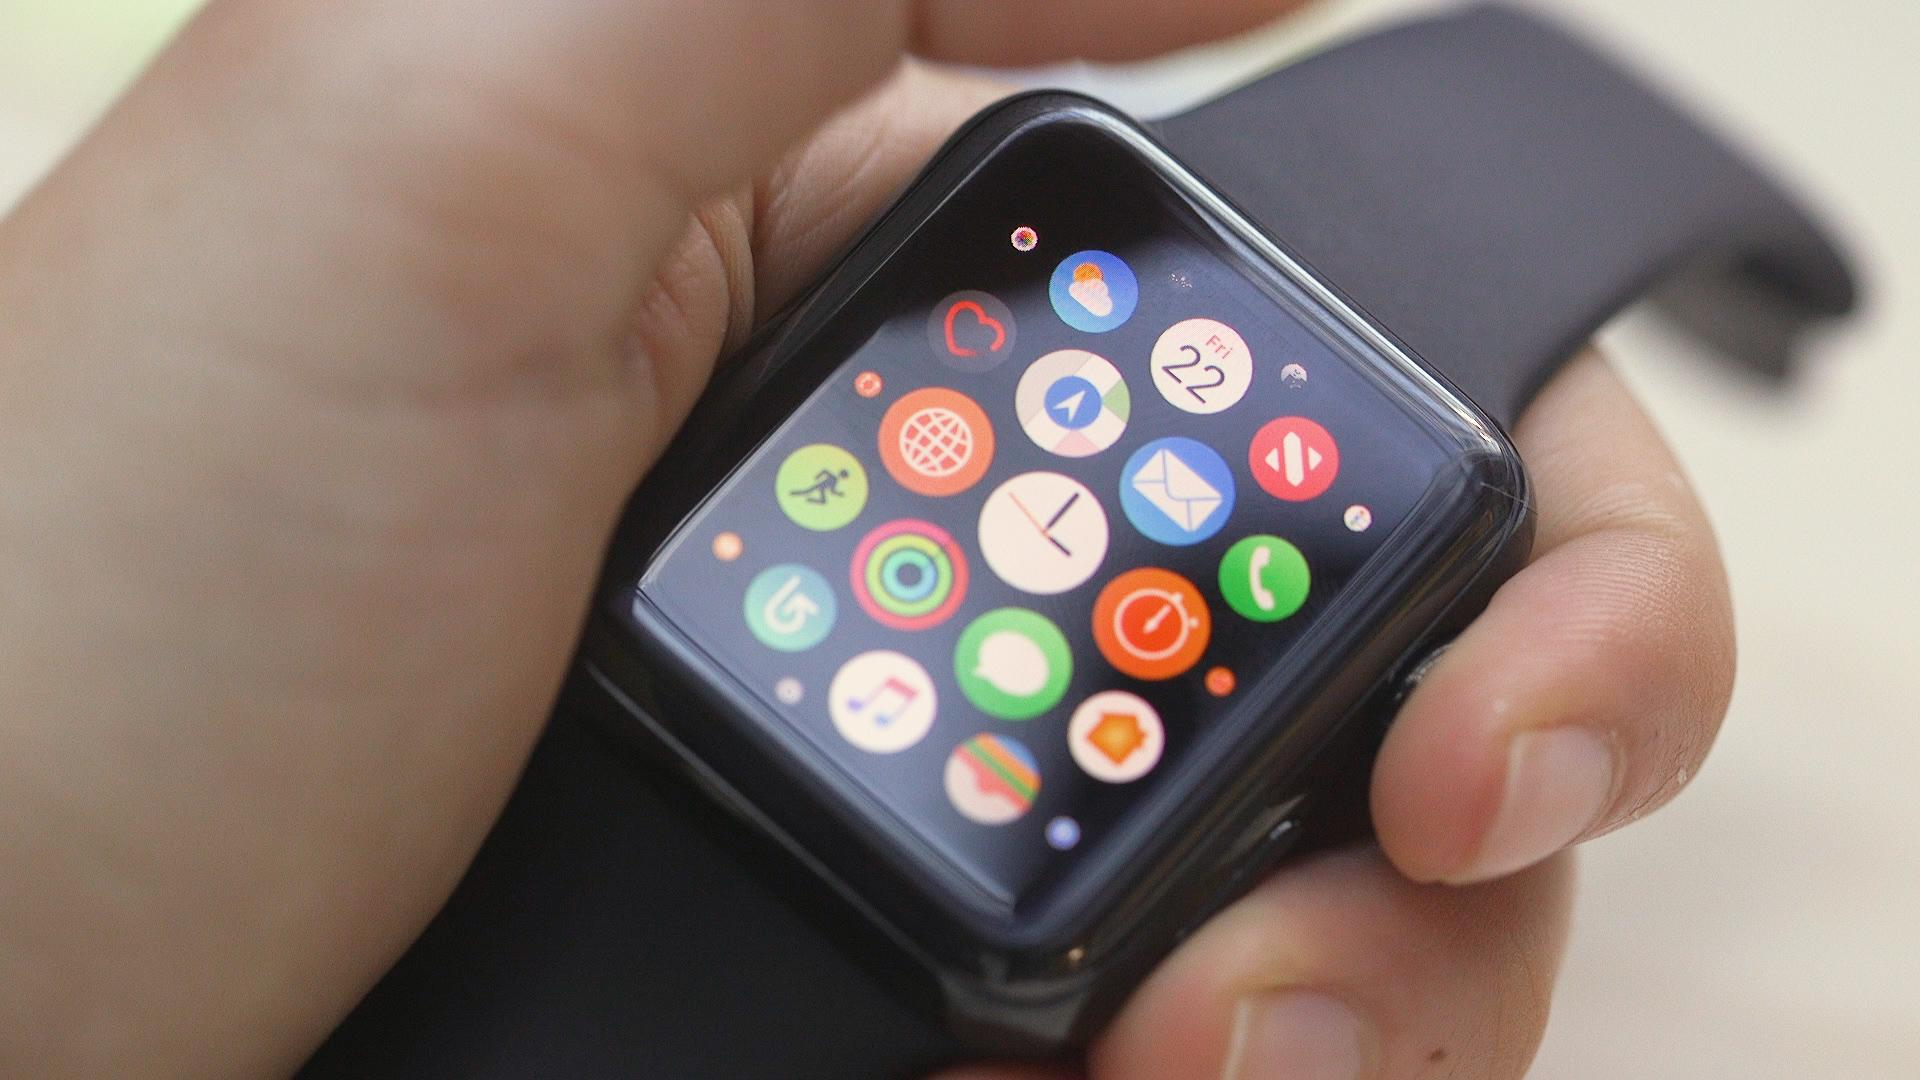 Useful features and apps of Smartwatch